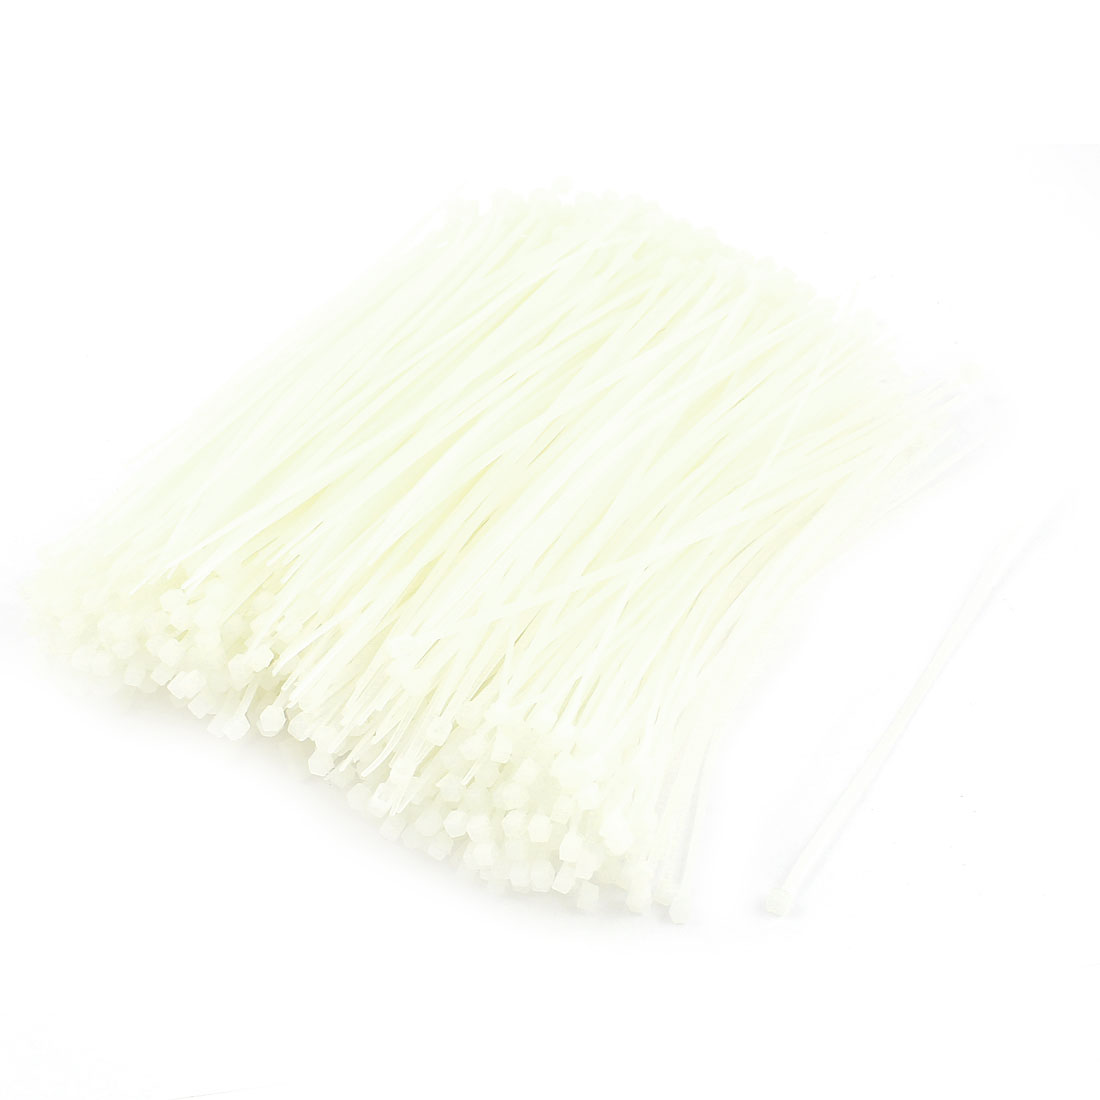 "1000pcs 6"" Length White Cord Wire Strap Nylon Cable Tie"